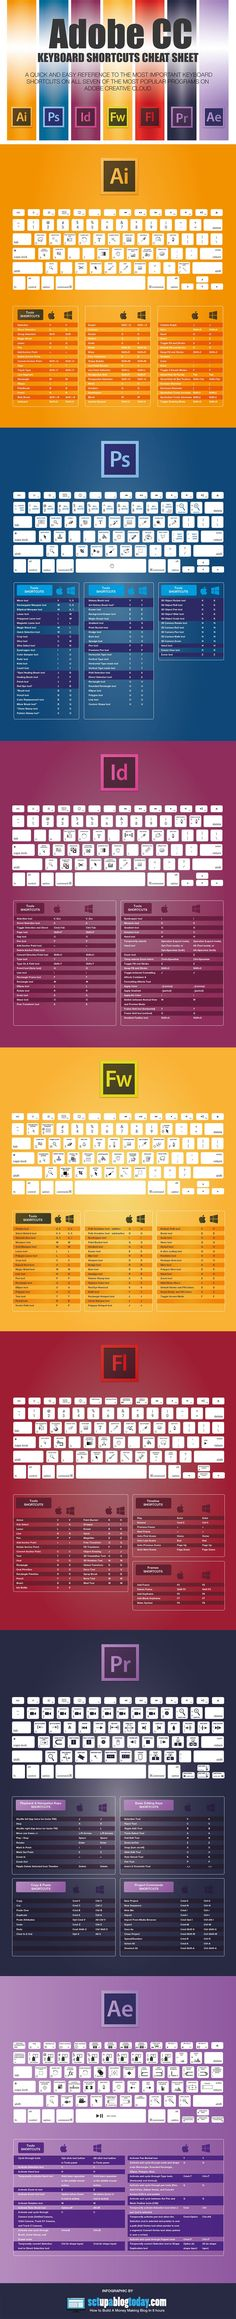 Adobe Creative Cloud: Alle Shortcuts für Photoshop, Illustrator, Premiere Pro und Co. auf einem Blick. (Infografik: Setupablogtoday.com)